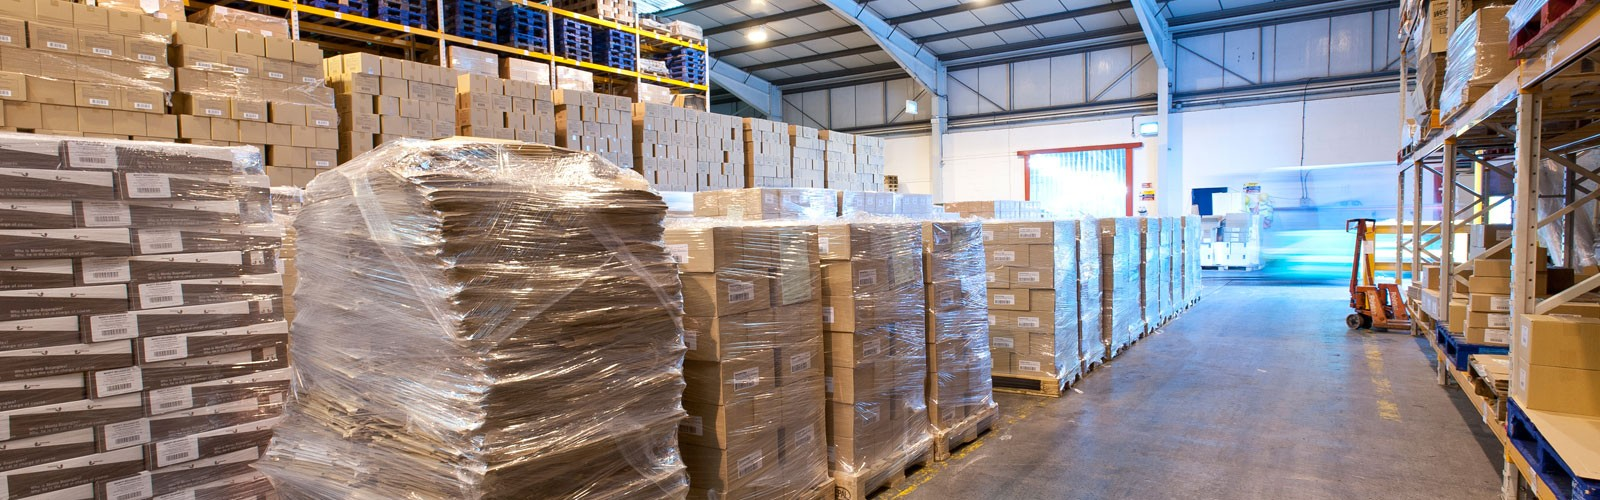 Smithfield Packing Supply Services : Co packing products and services marsden packaging